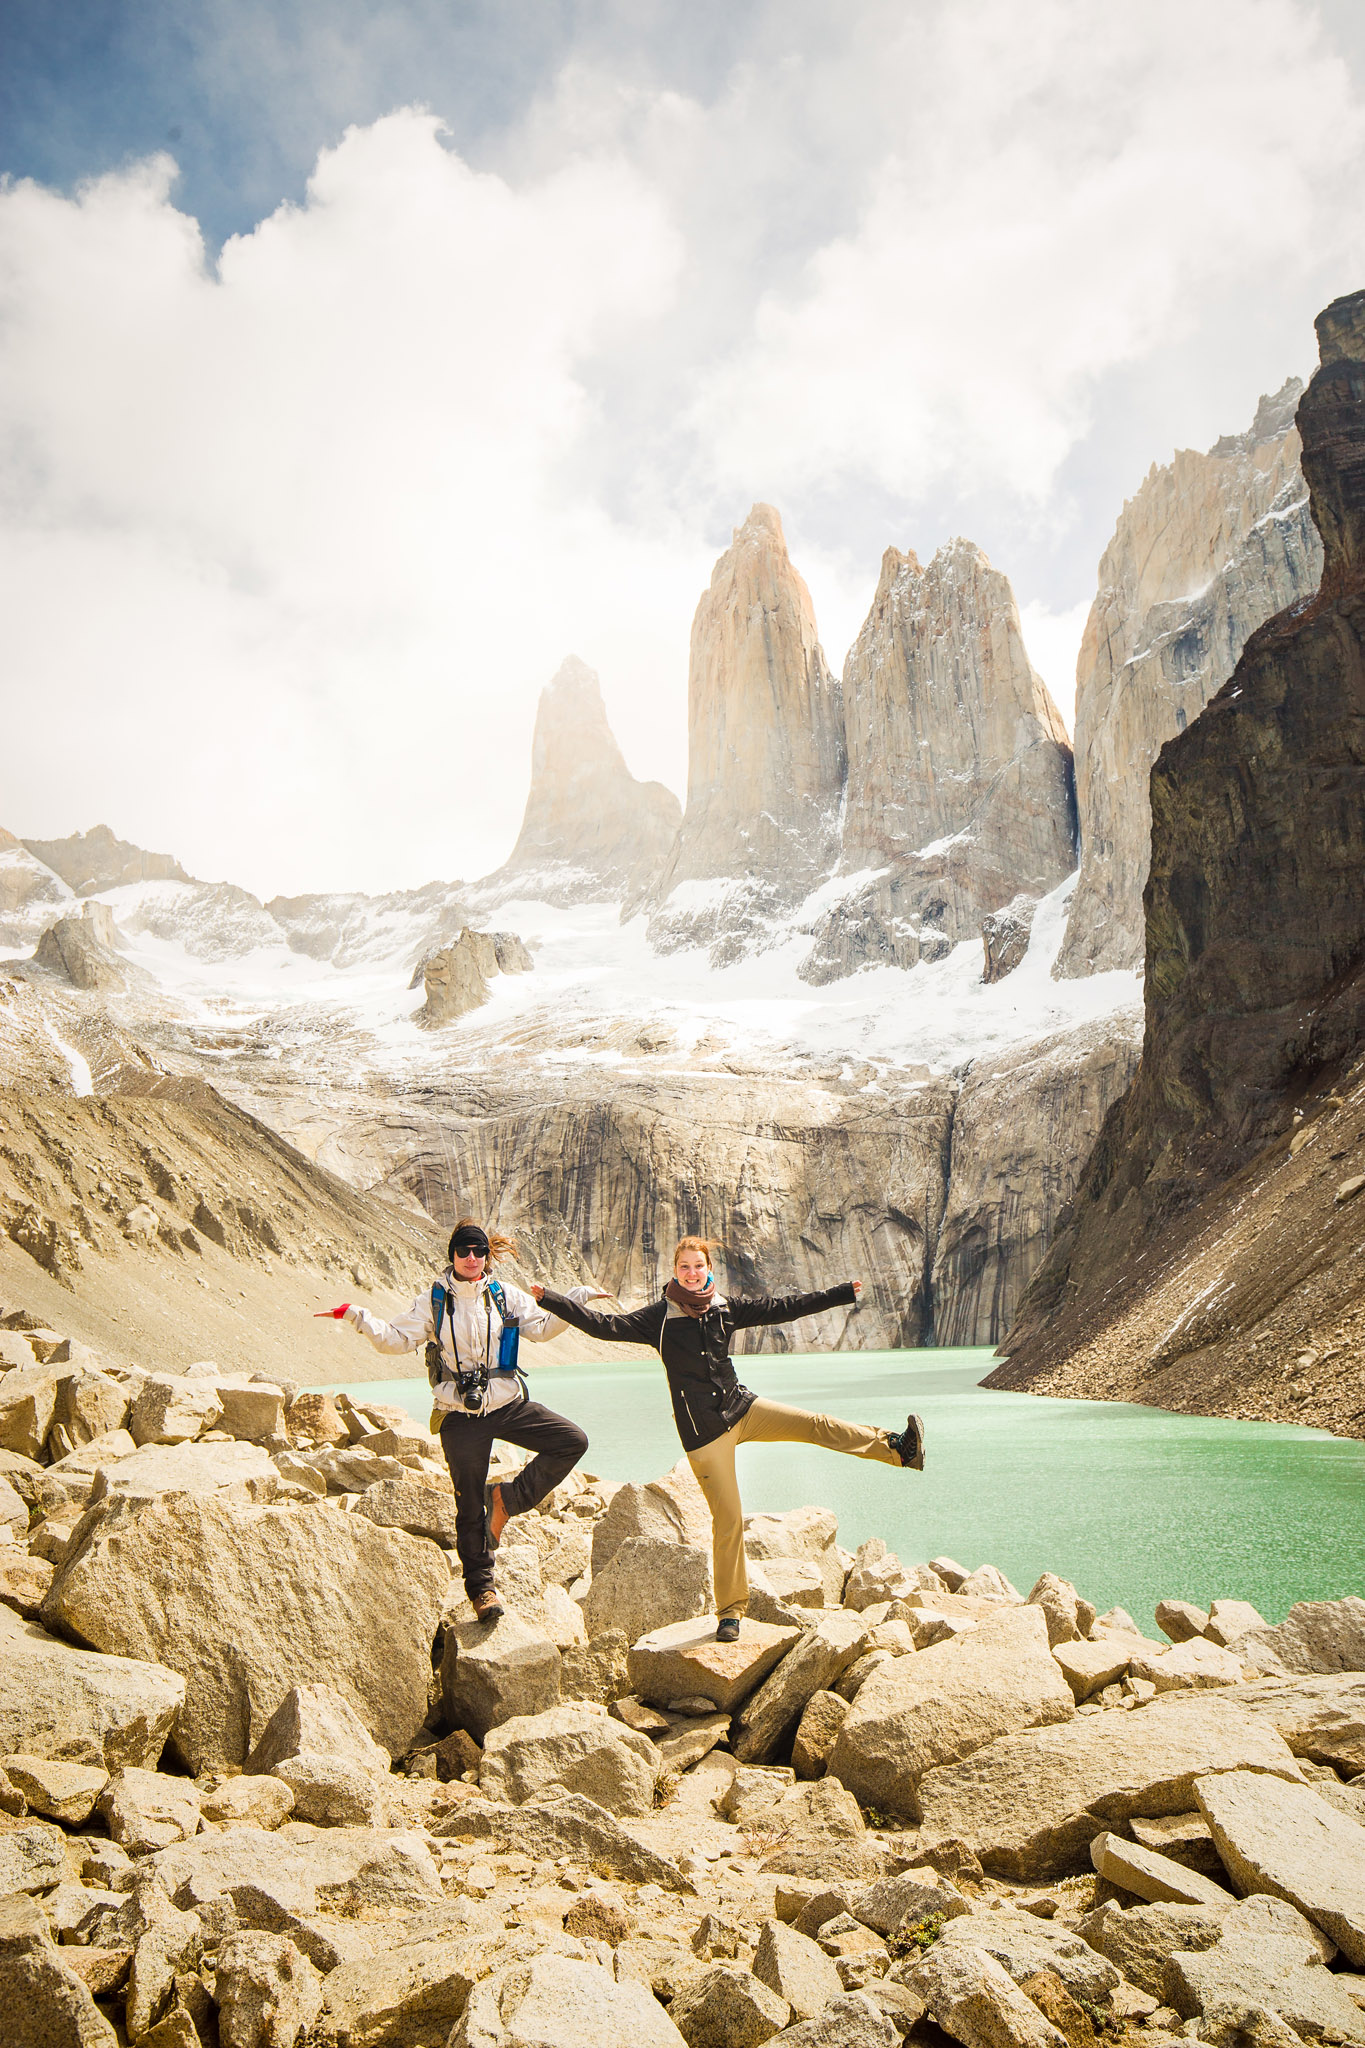 Wedding-Travellers-Overlanding-Destination-Wedding-Chile-Torres-del-Paine-Tres-Torres-Three-Towers-silly-girls-fun